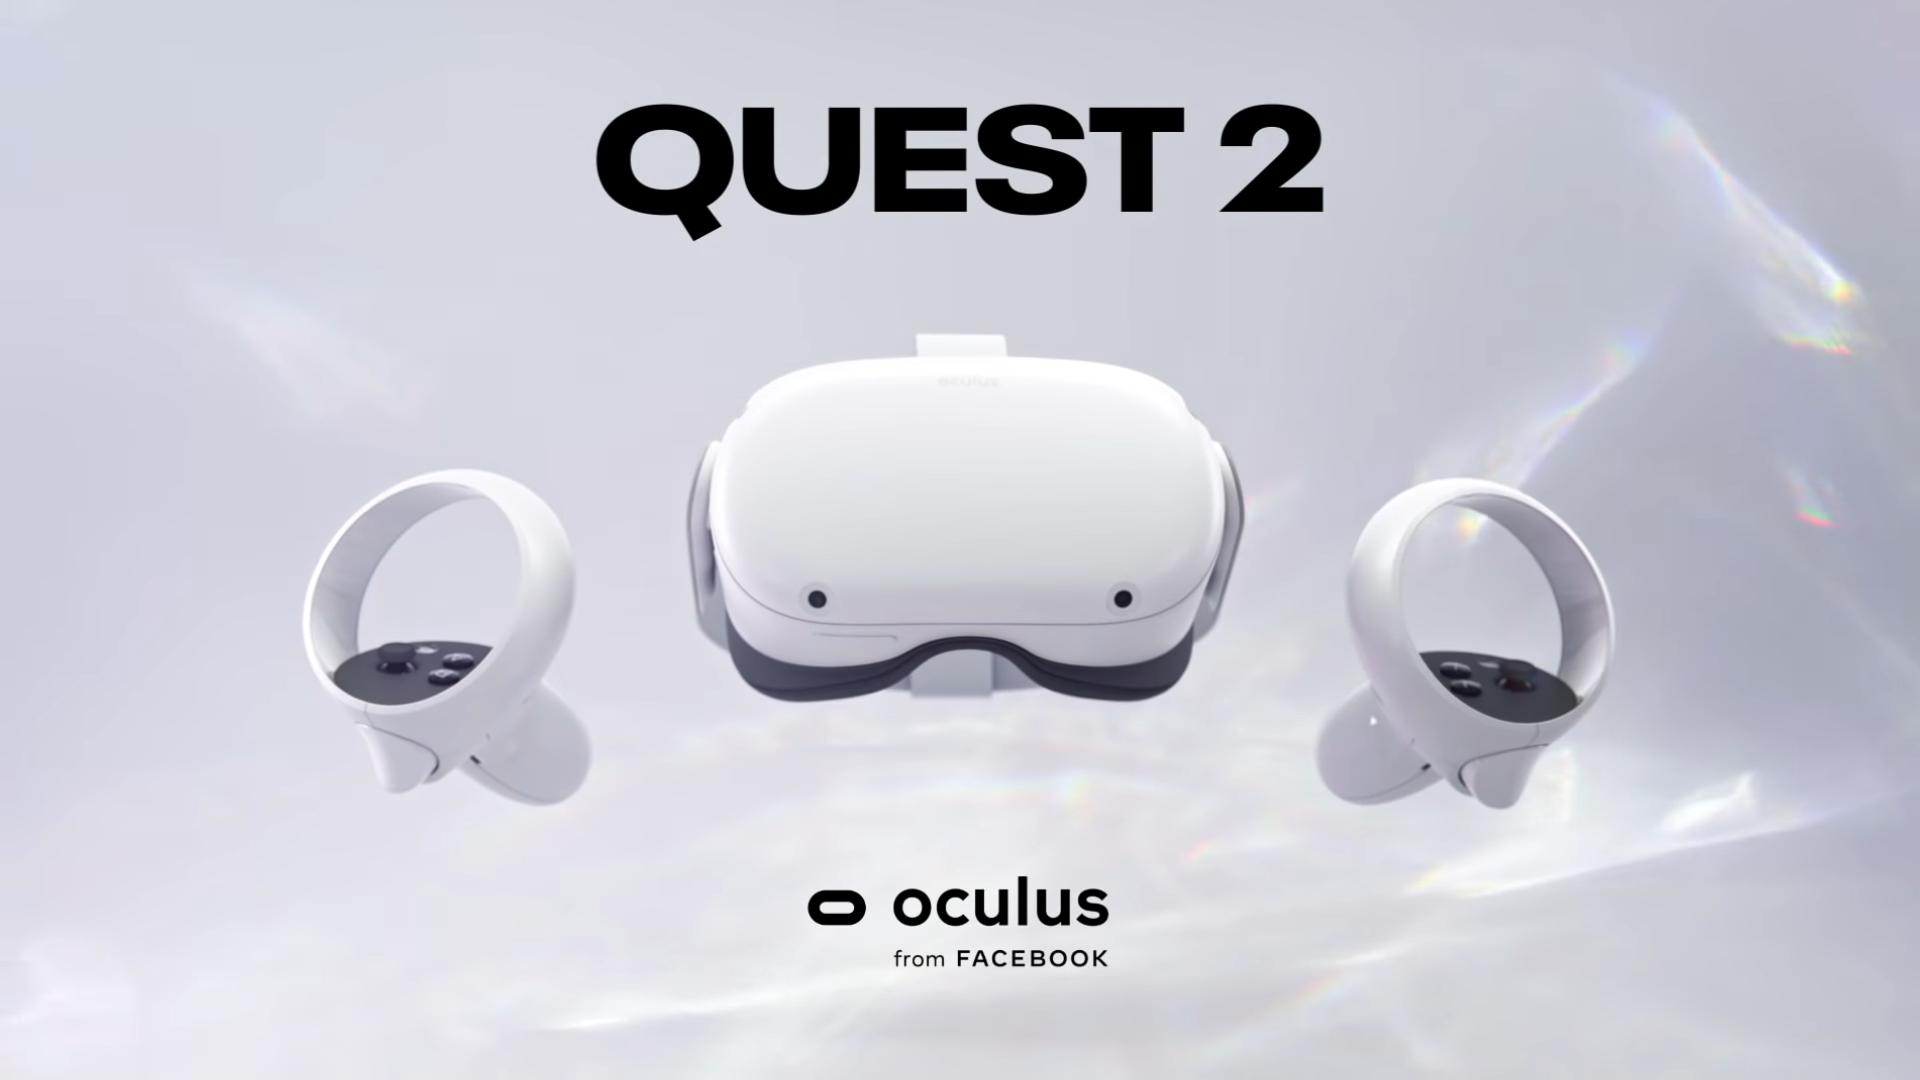 Oculus Quest 2 reveal video leaked by Facebook boasts 'almost 4K display'